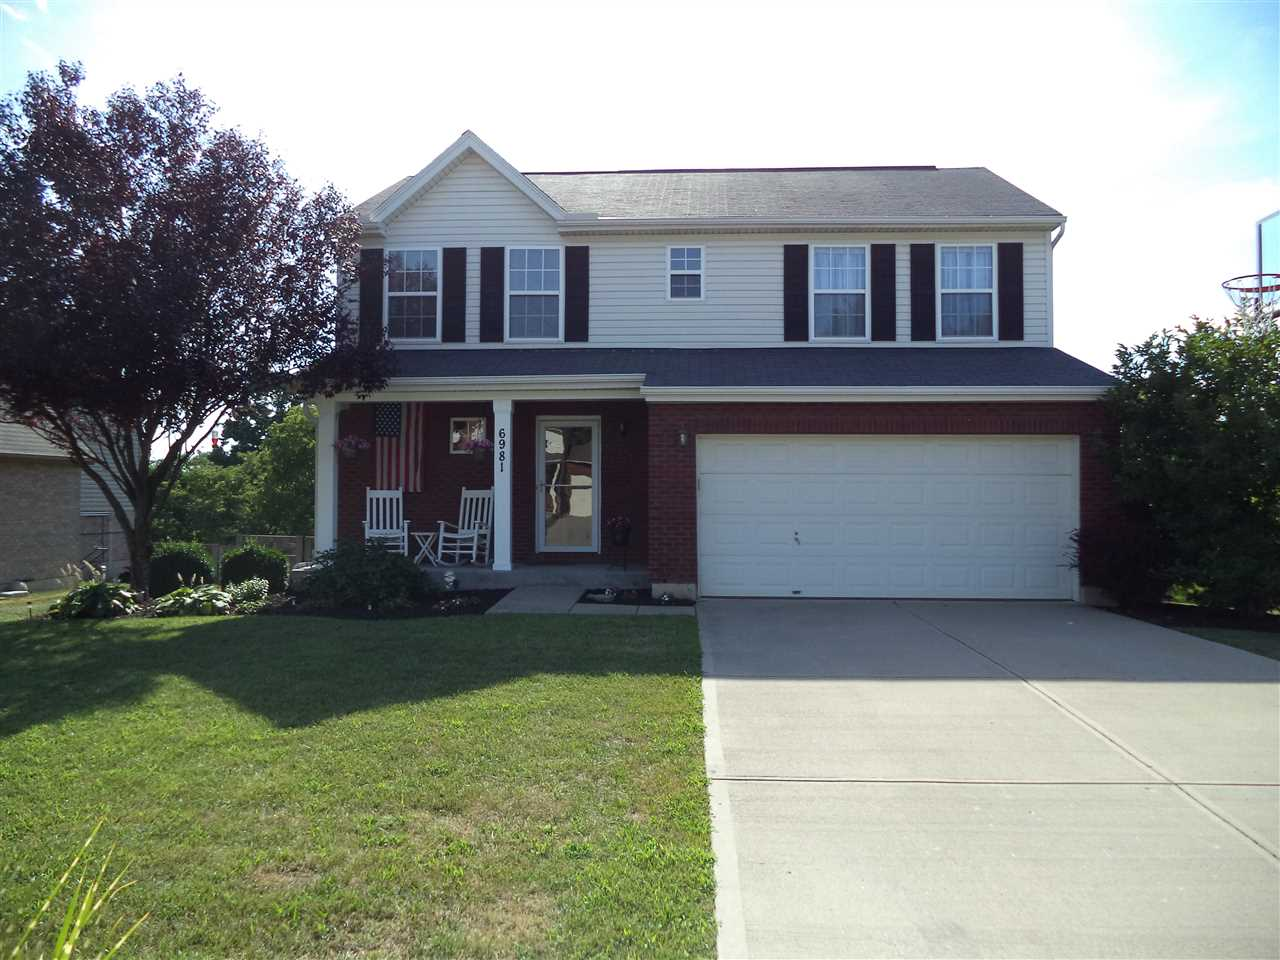 Photo 1 for 6981 Gordon Blvd Burlington, KY 41005